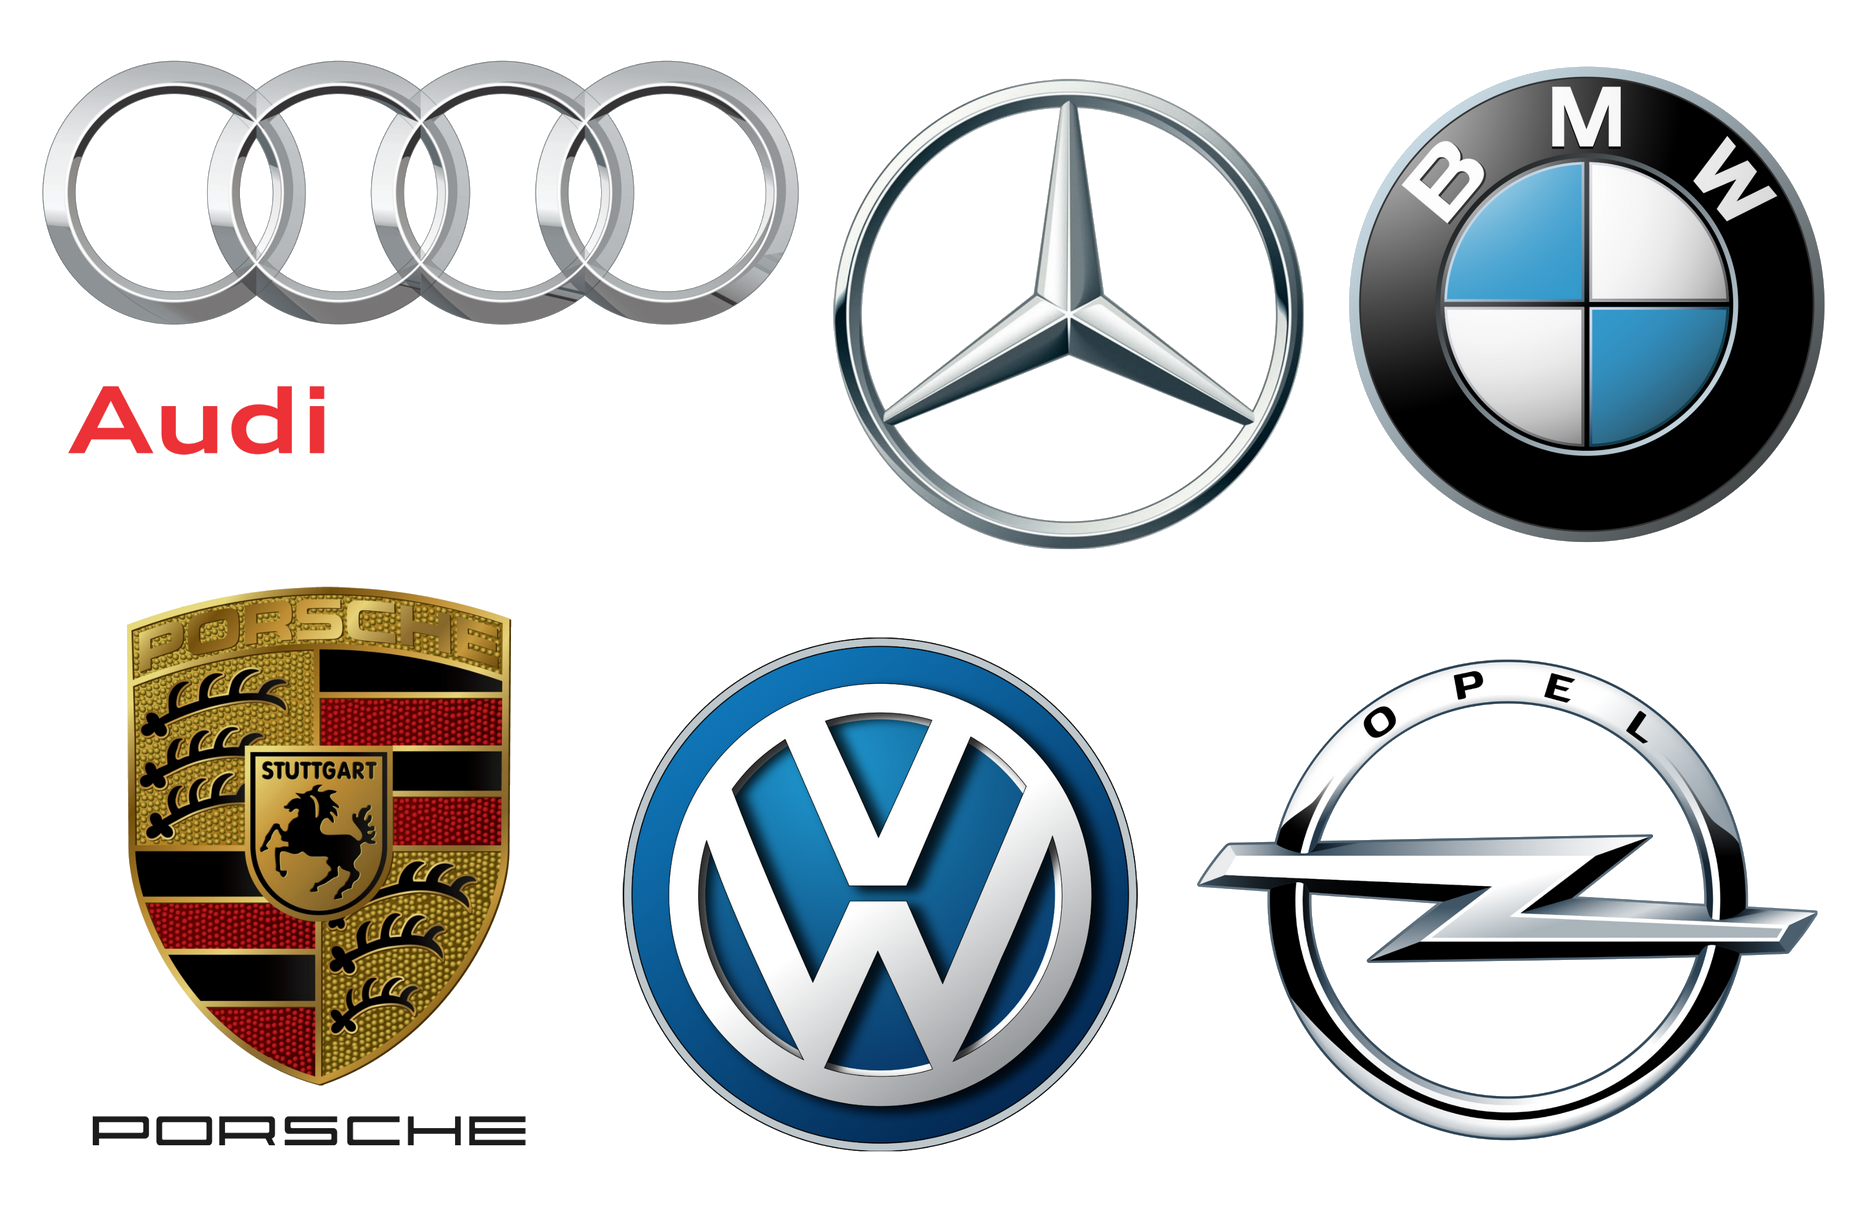 German car brands companies and manufacturers car brand names german car brands logos biocorpaavc Choice Image